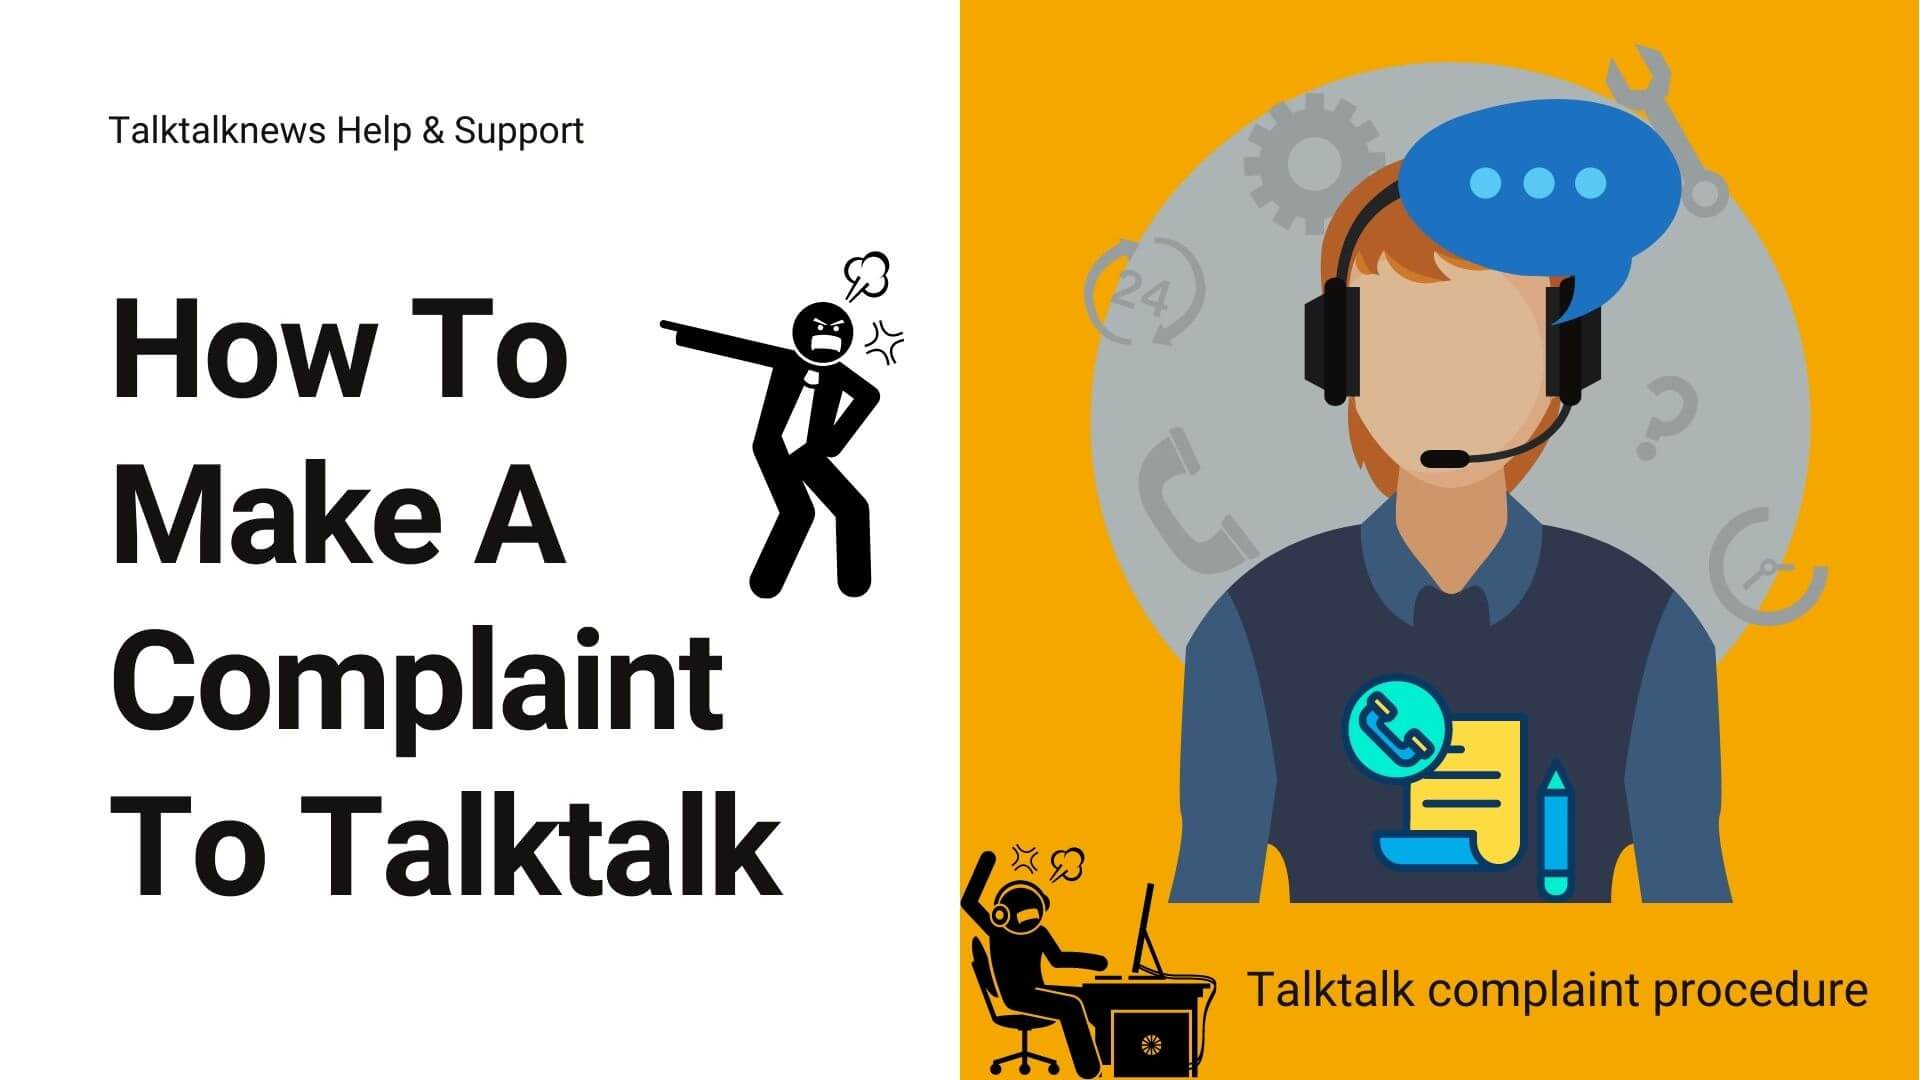 Talktalk complaint procedure